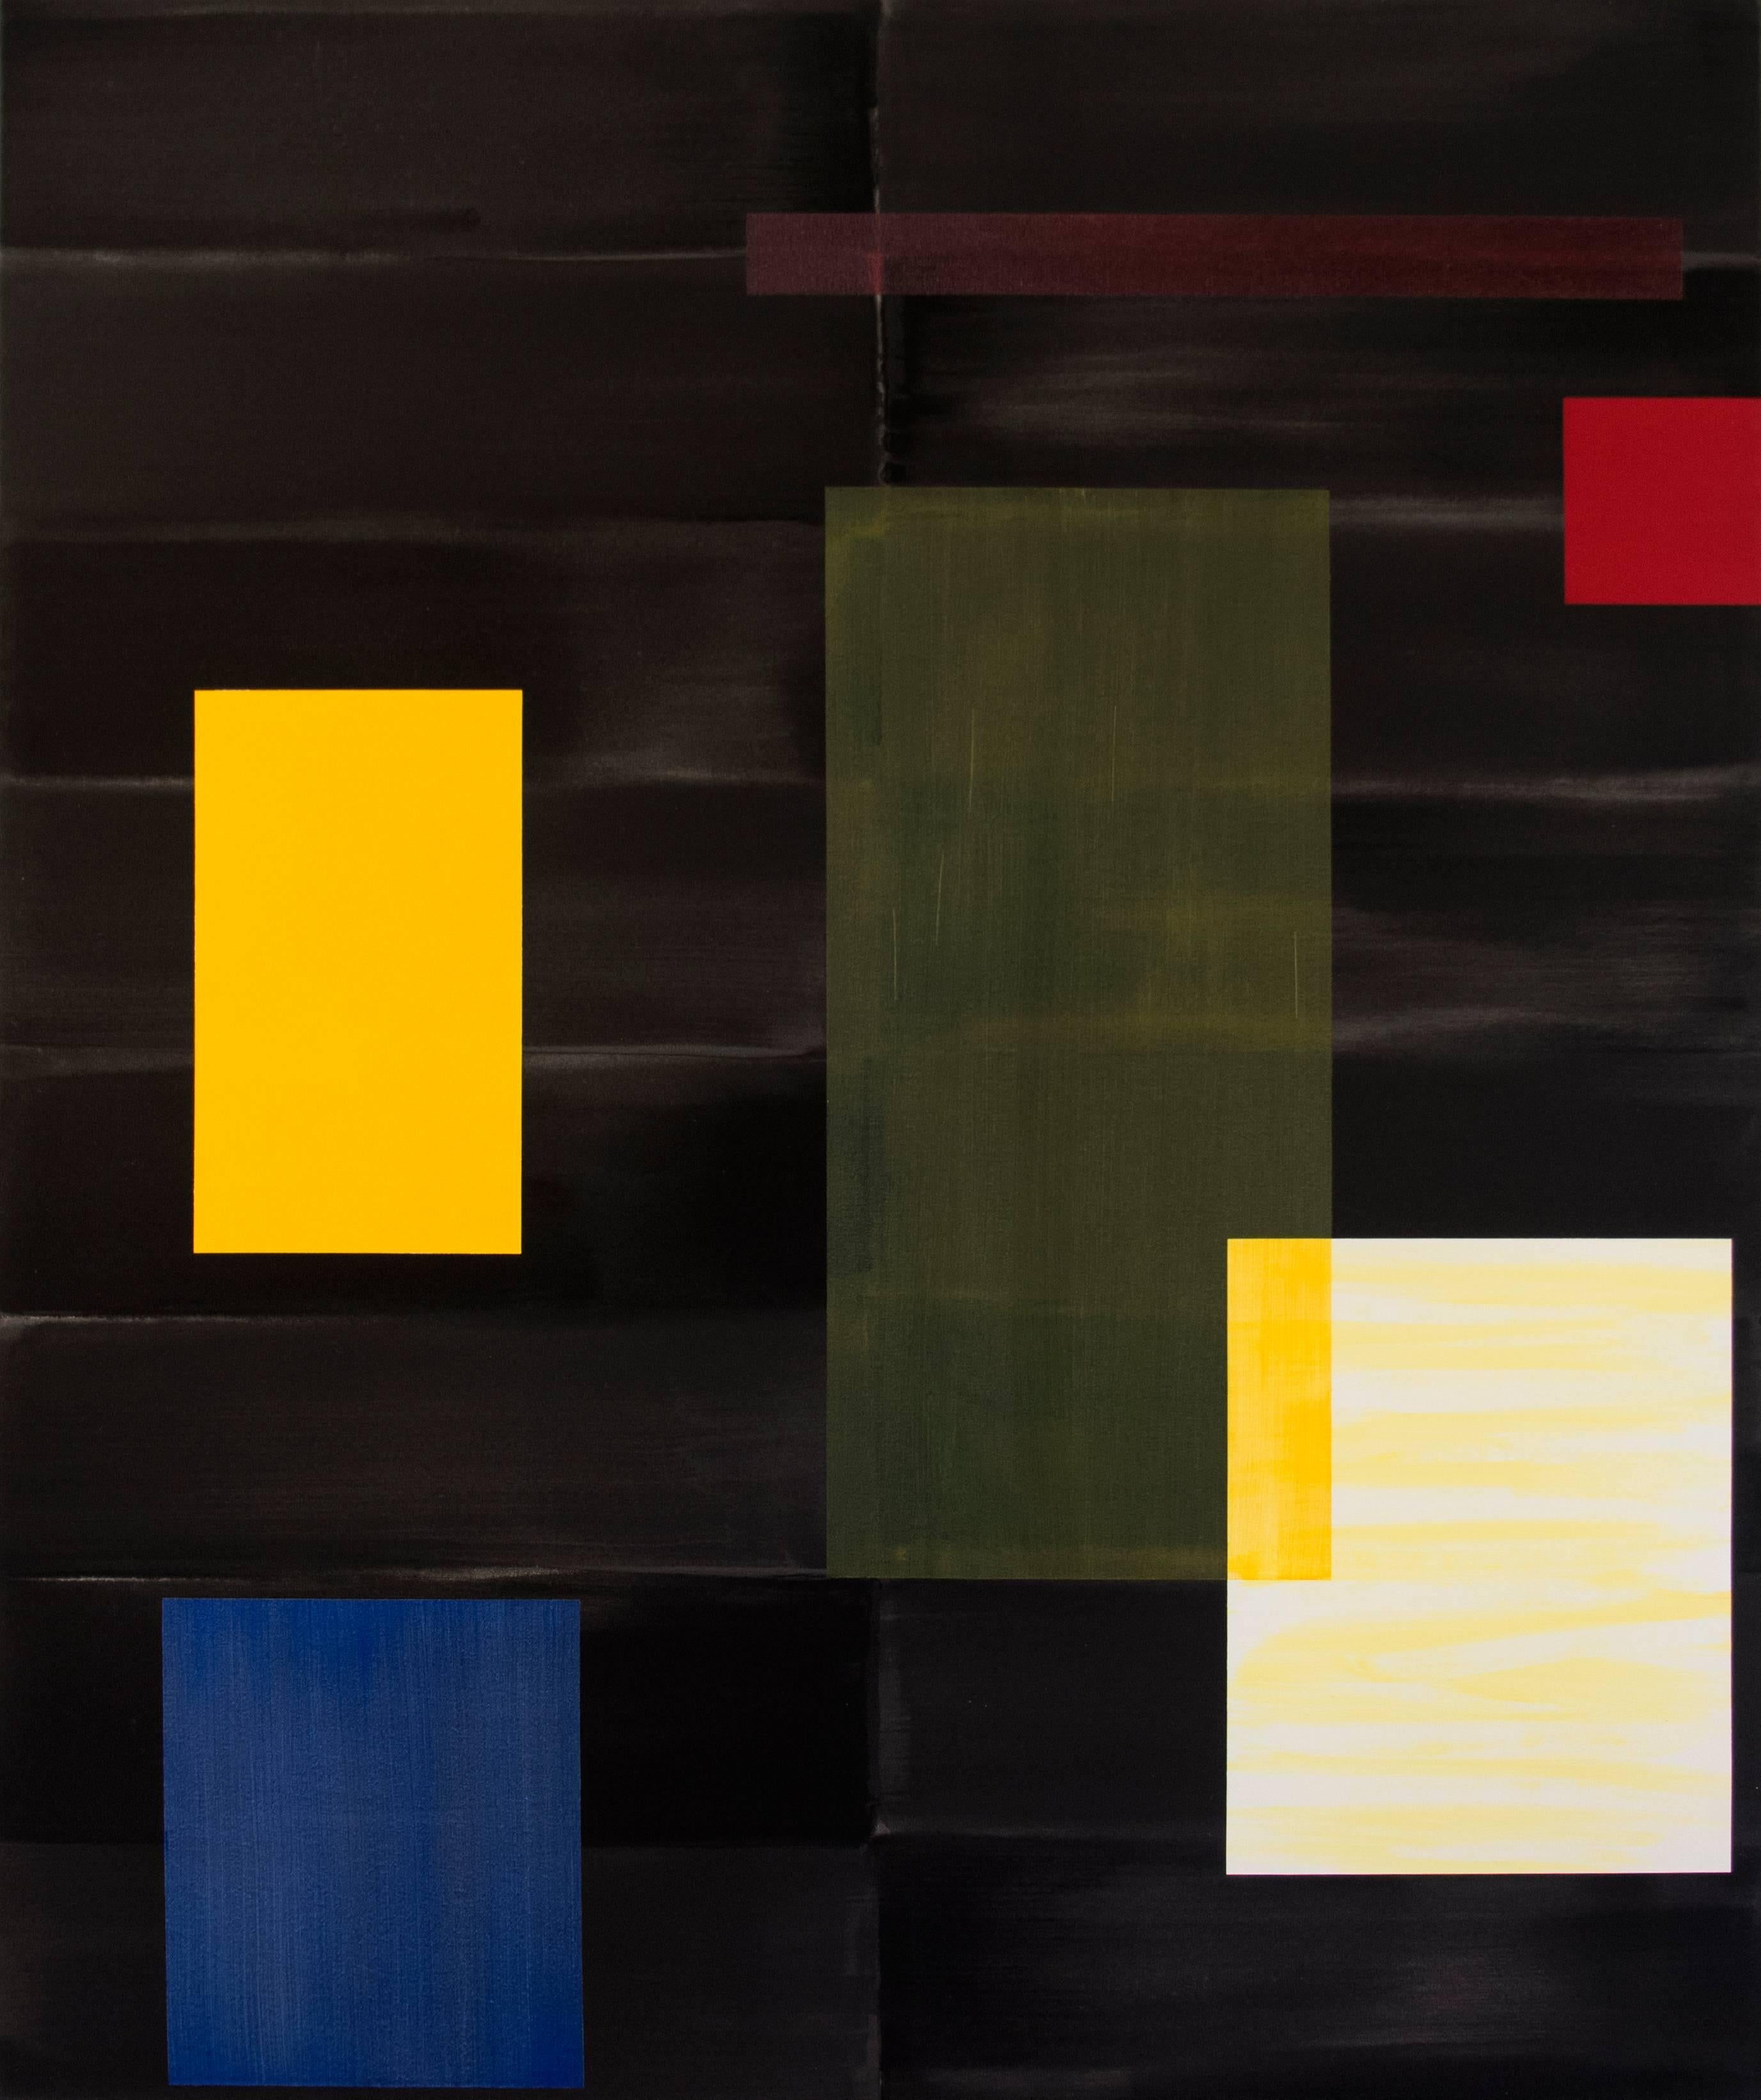 Black - large, yellow, green, blue, geometric abstraction, acrylic on canvas